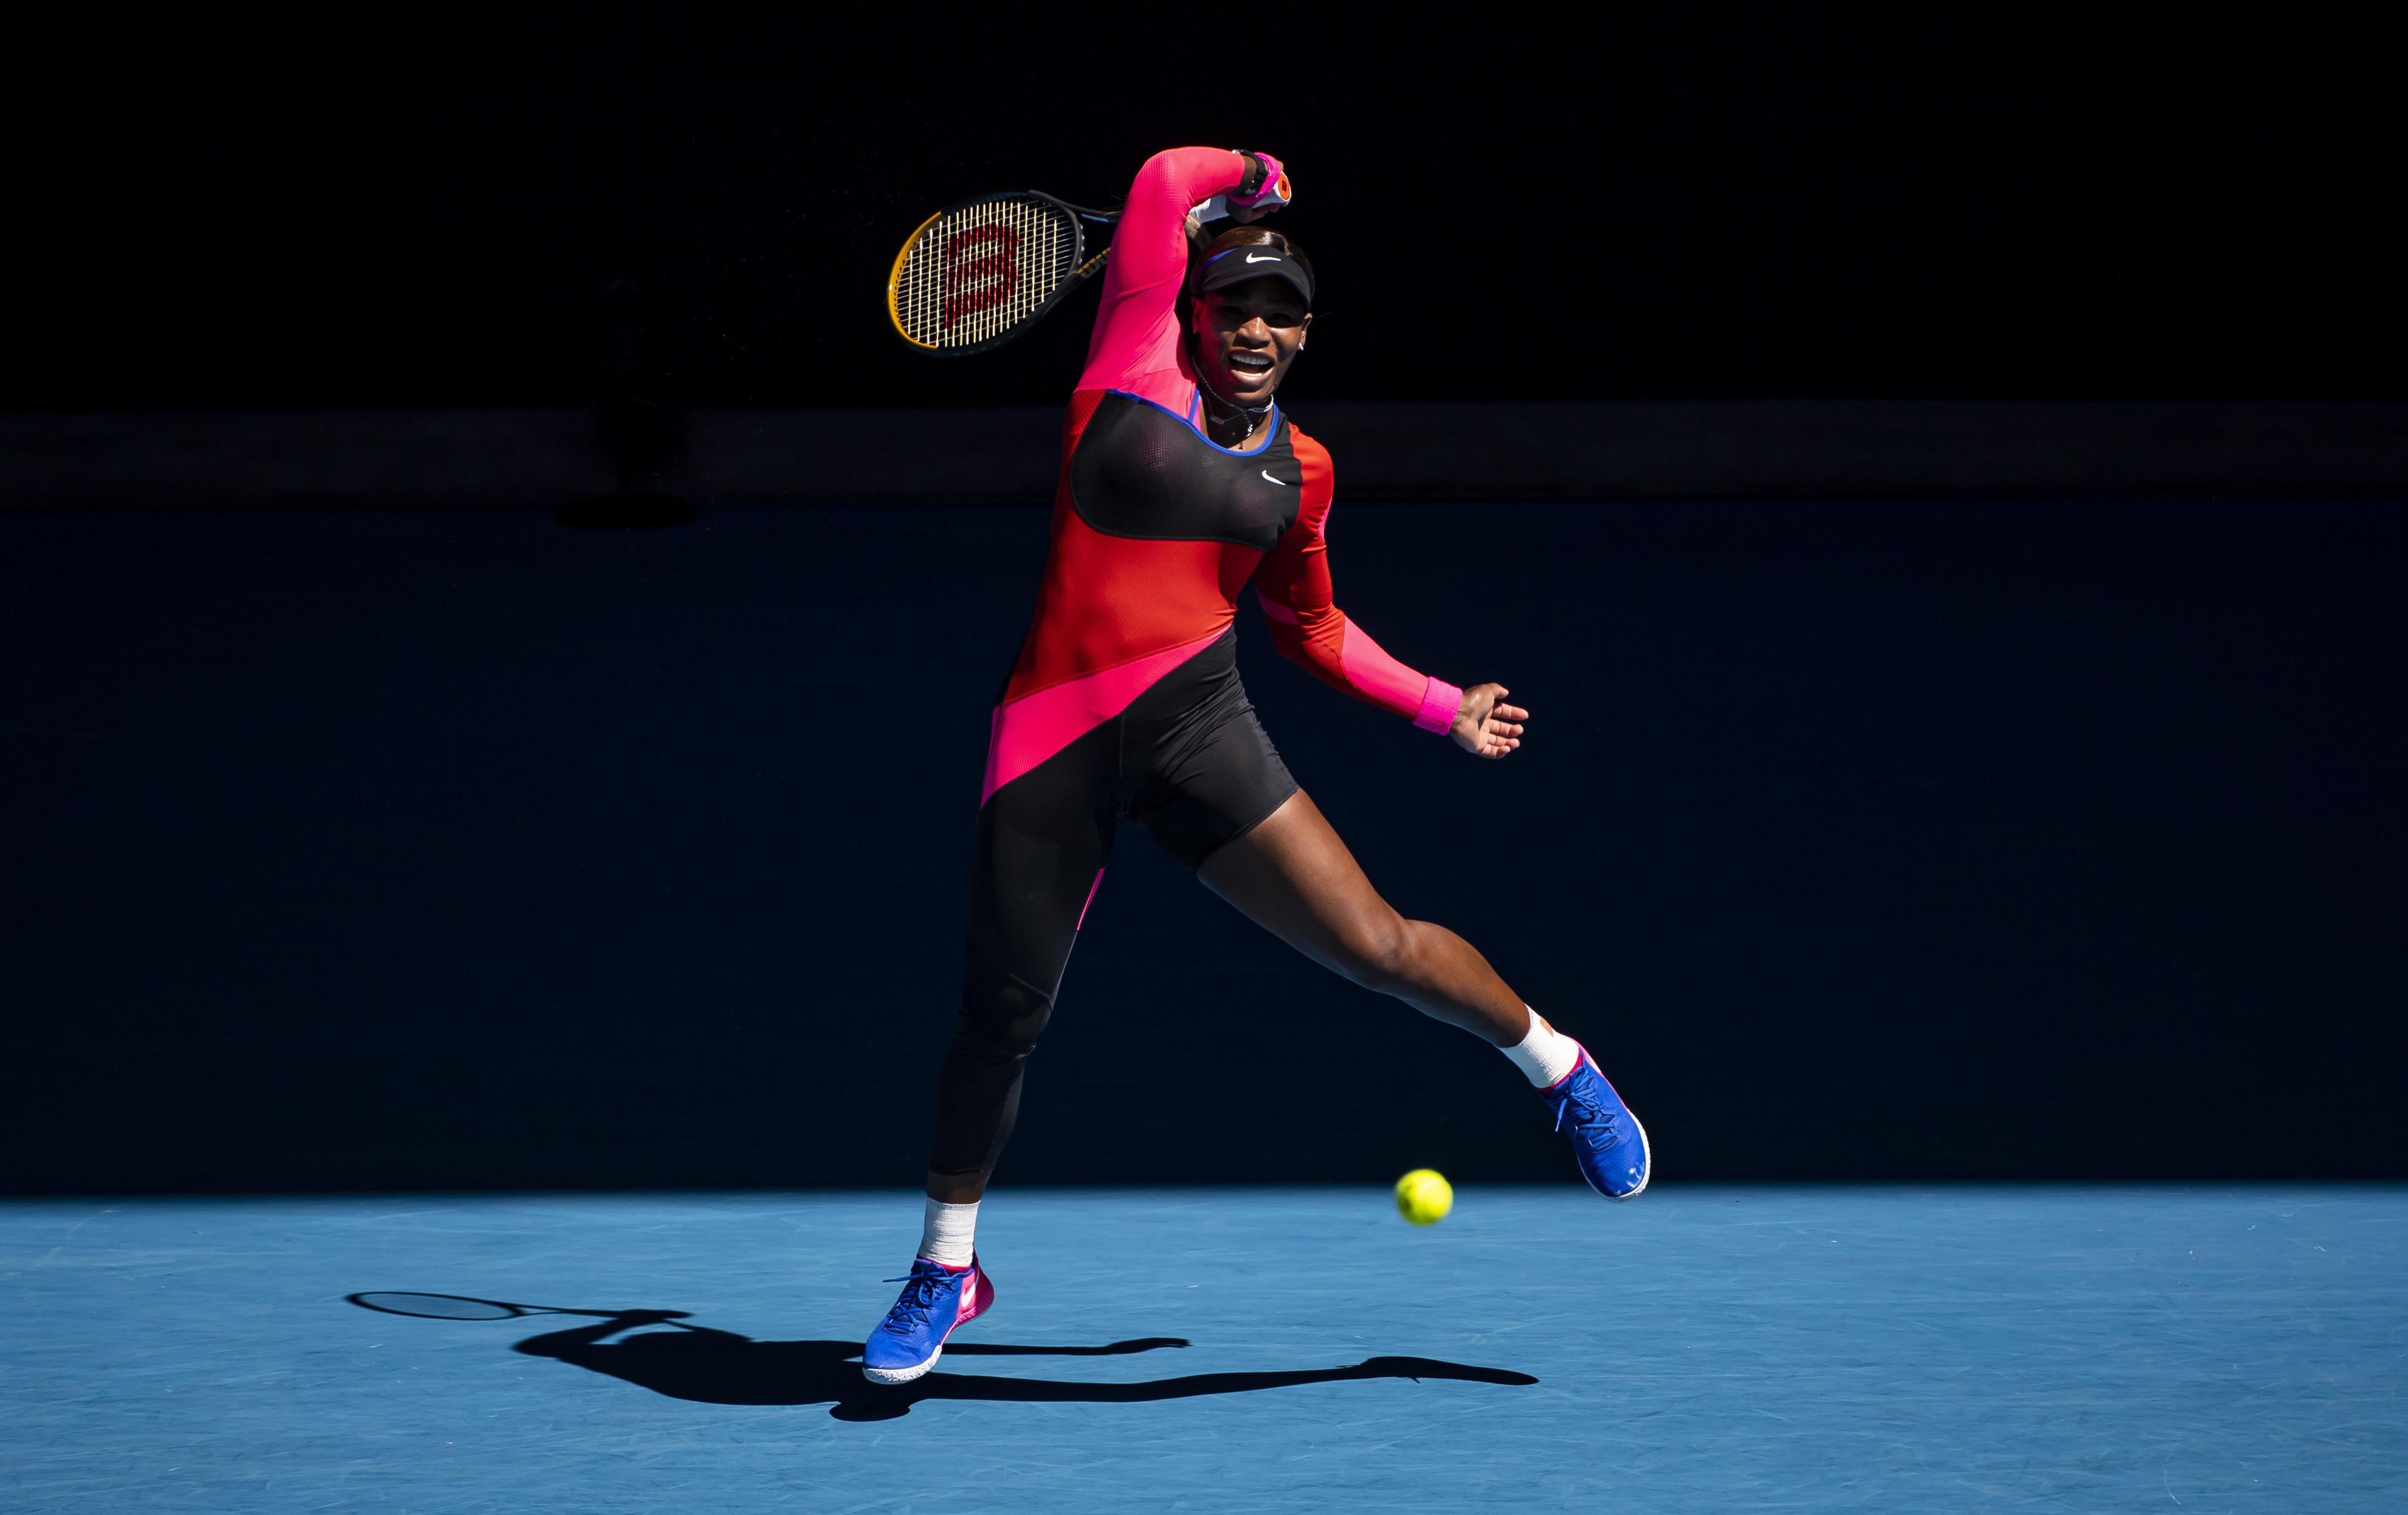 Serena Williams hits a forehand at the 2021 Australian Open